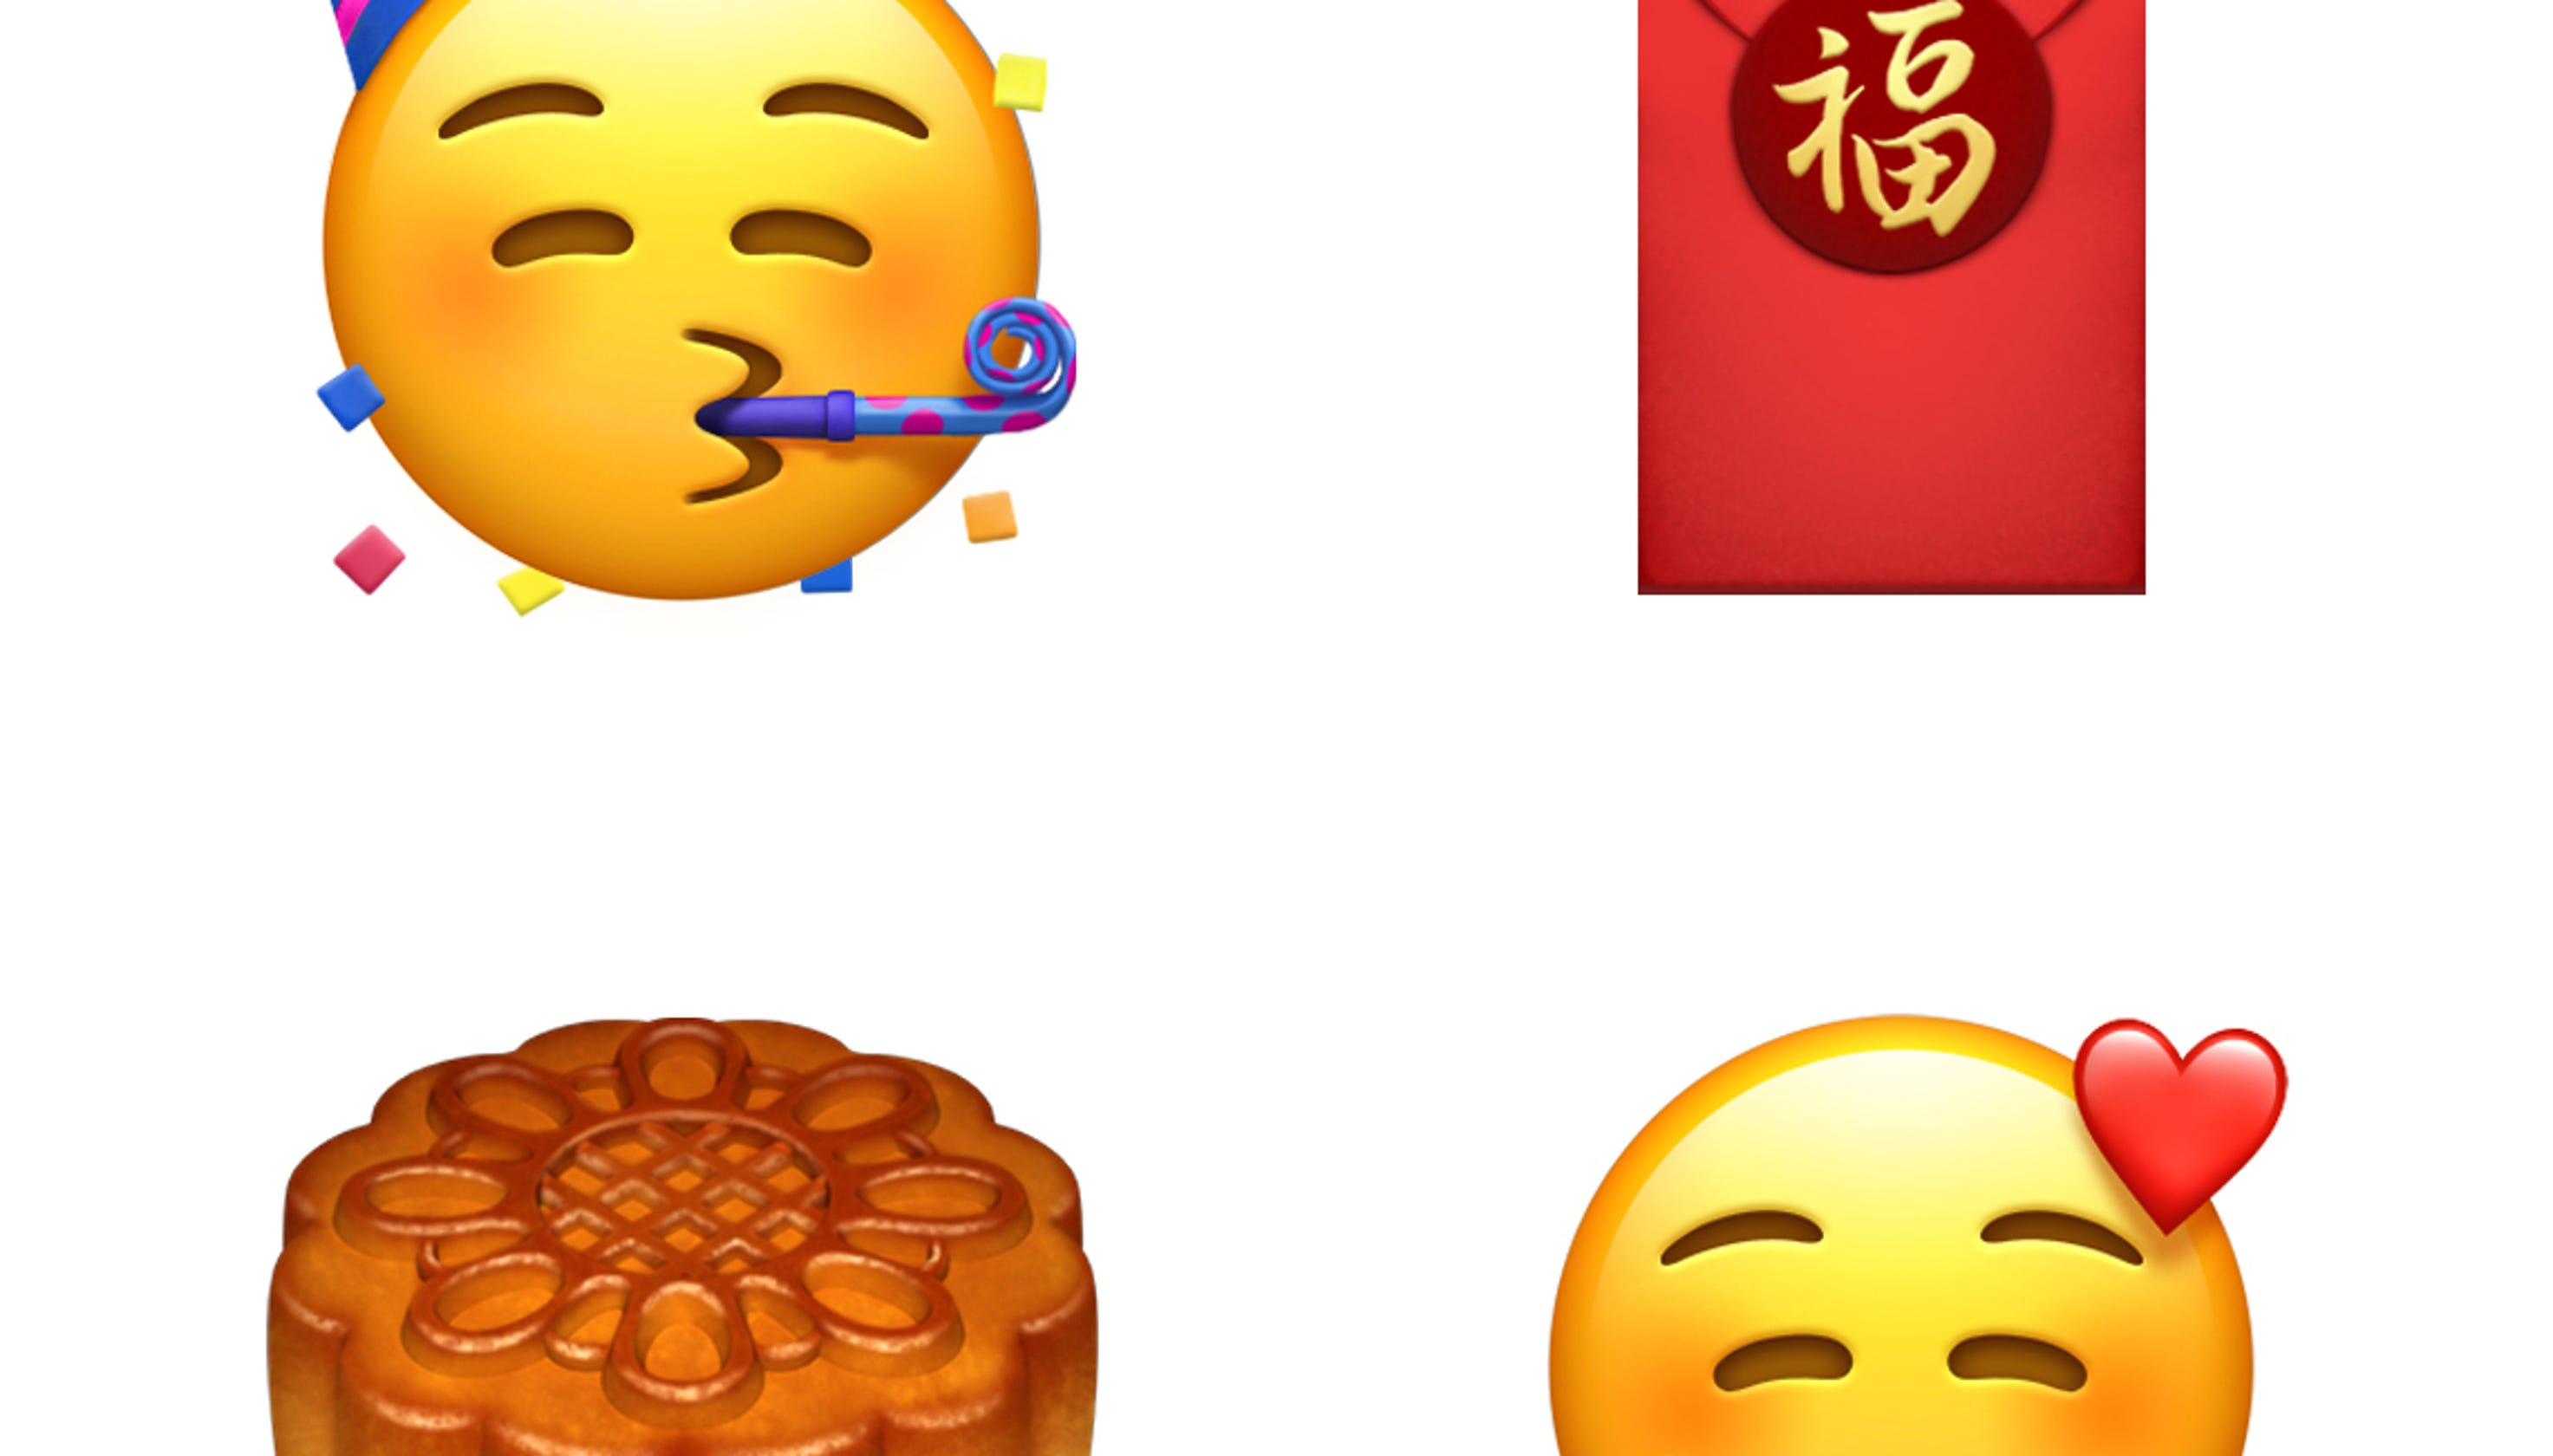 Apple's adding 70 new emoji in iOS 12 1 update